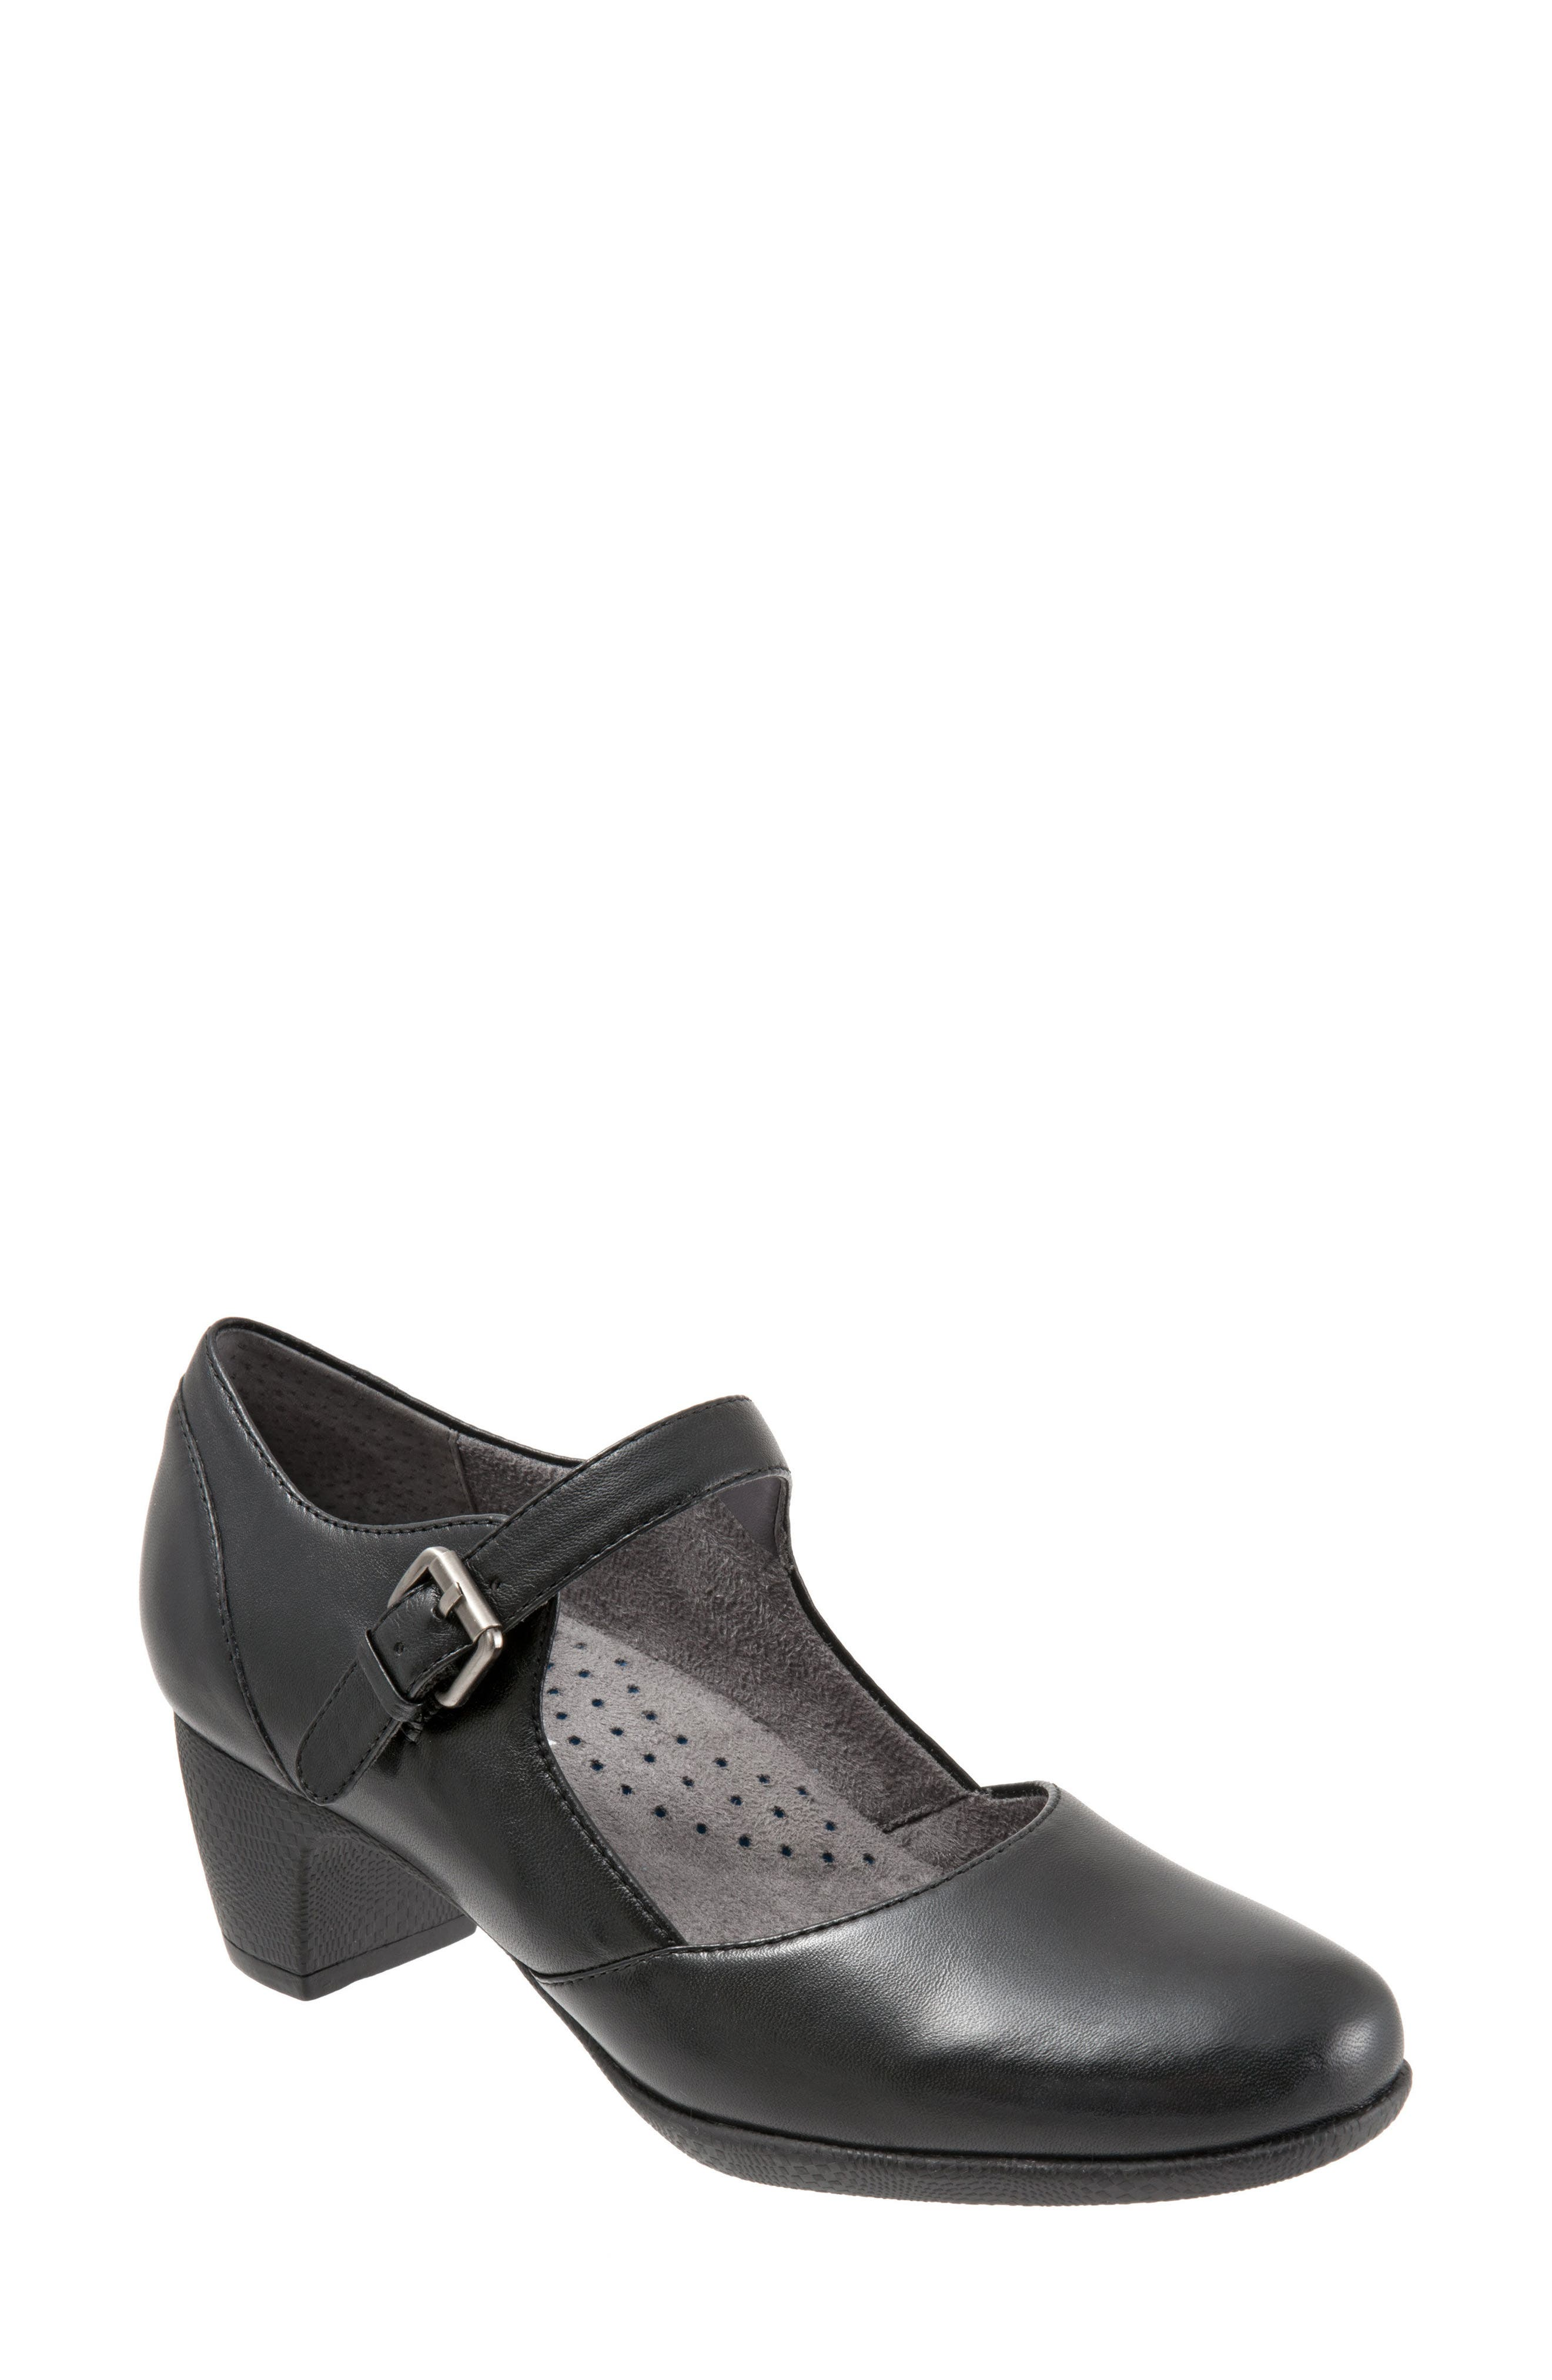 Irish II Pump,                         Main,                         color, BLACK LEATHER